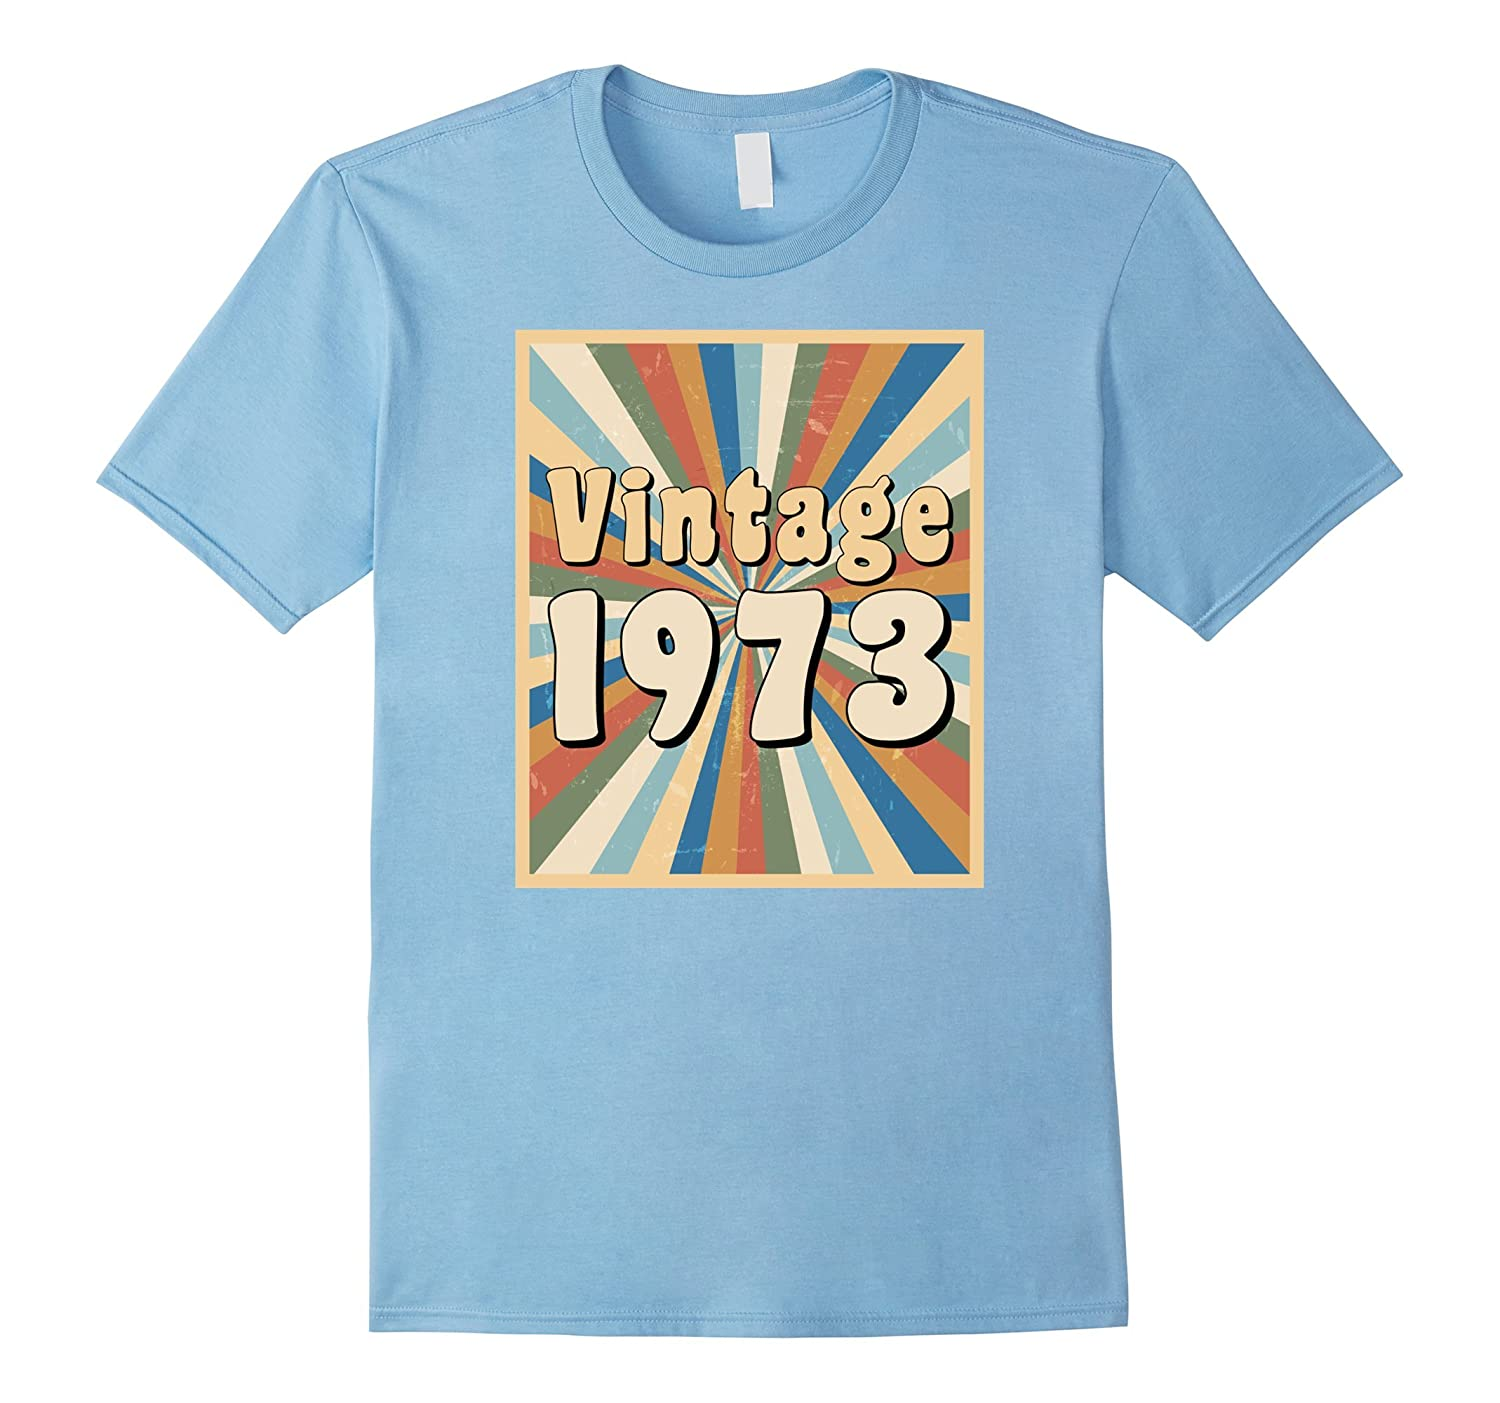 Vintage 1973 t-shirt with retro 1970s look-FL